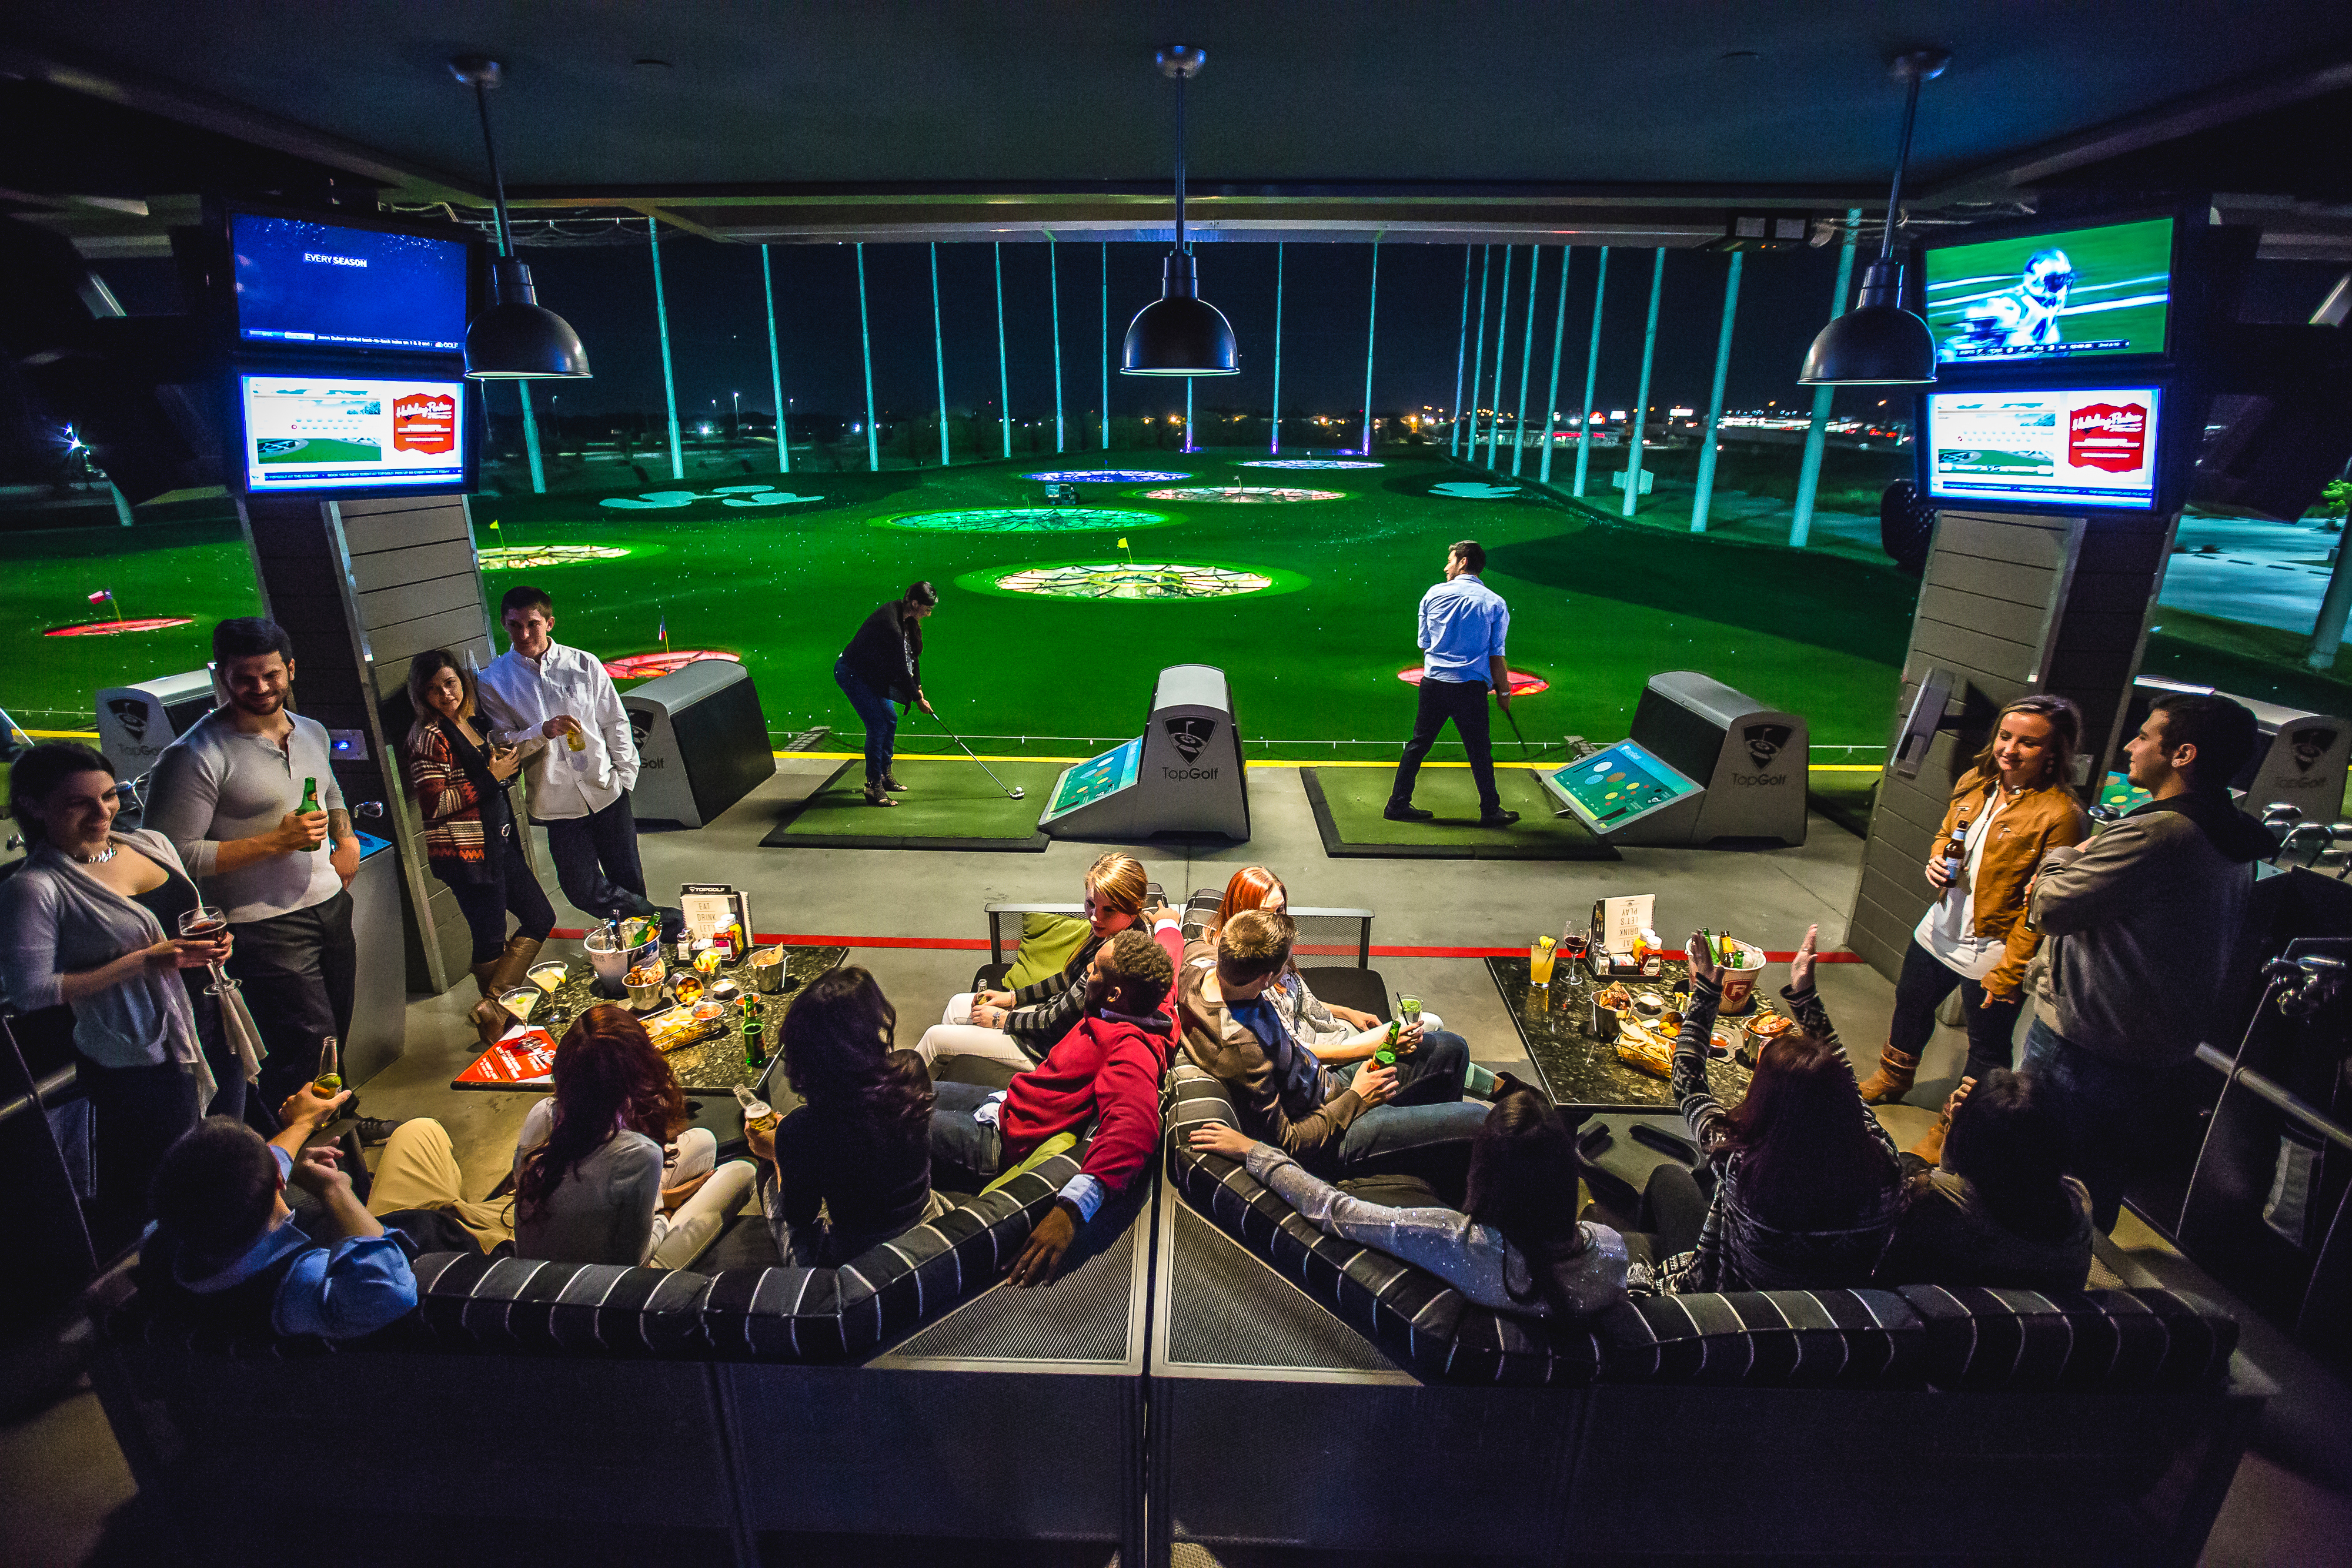 College Night at Topgolf | Tourism for the Salt River Indian Community